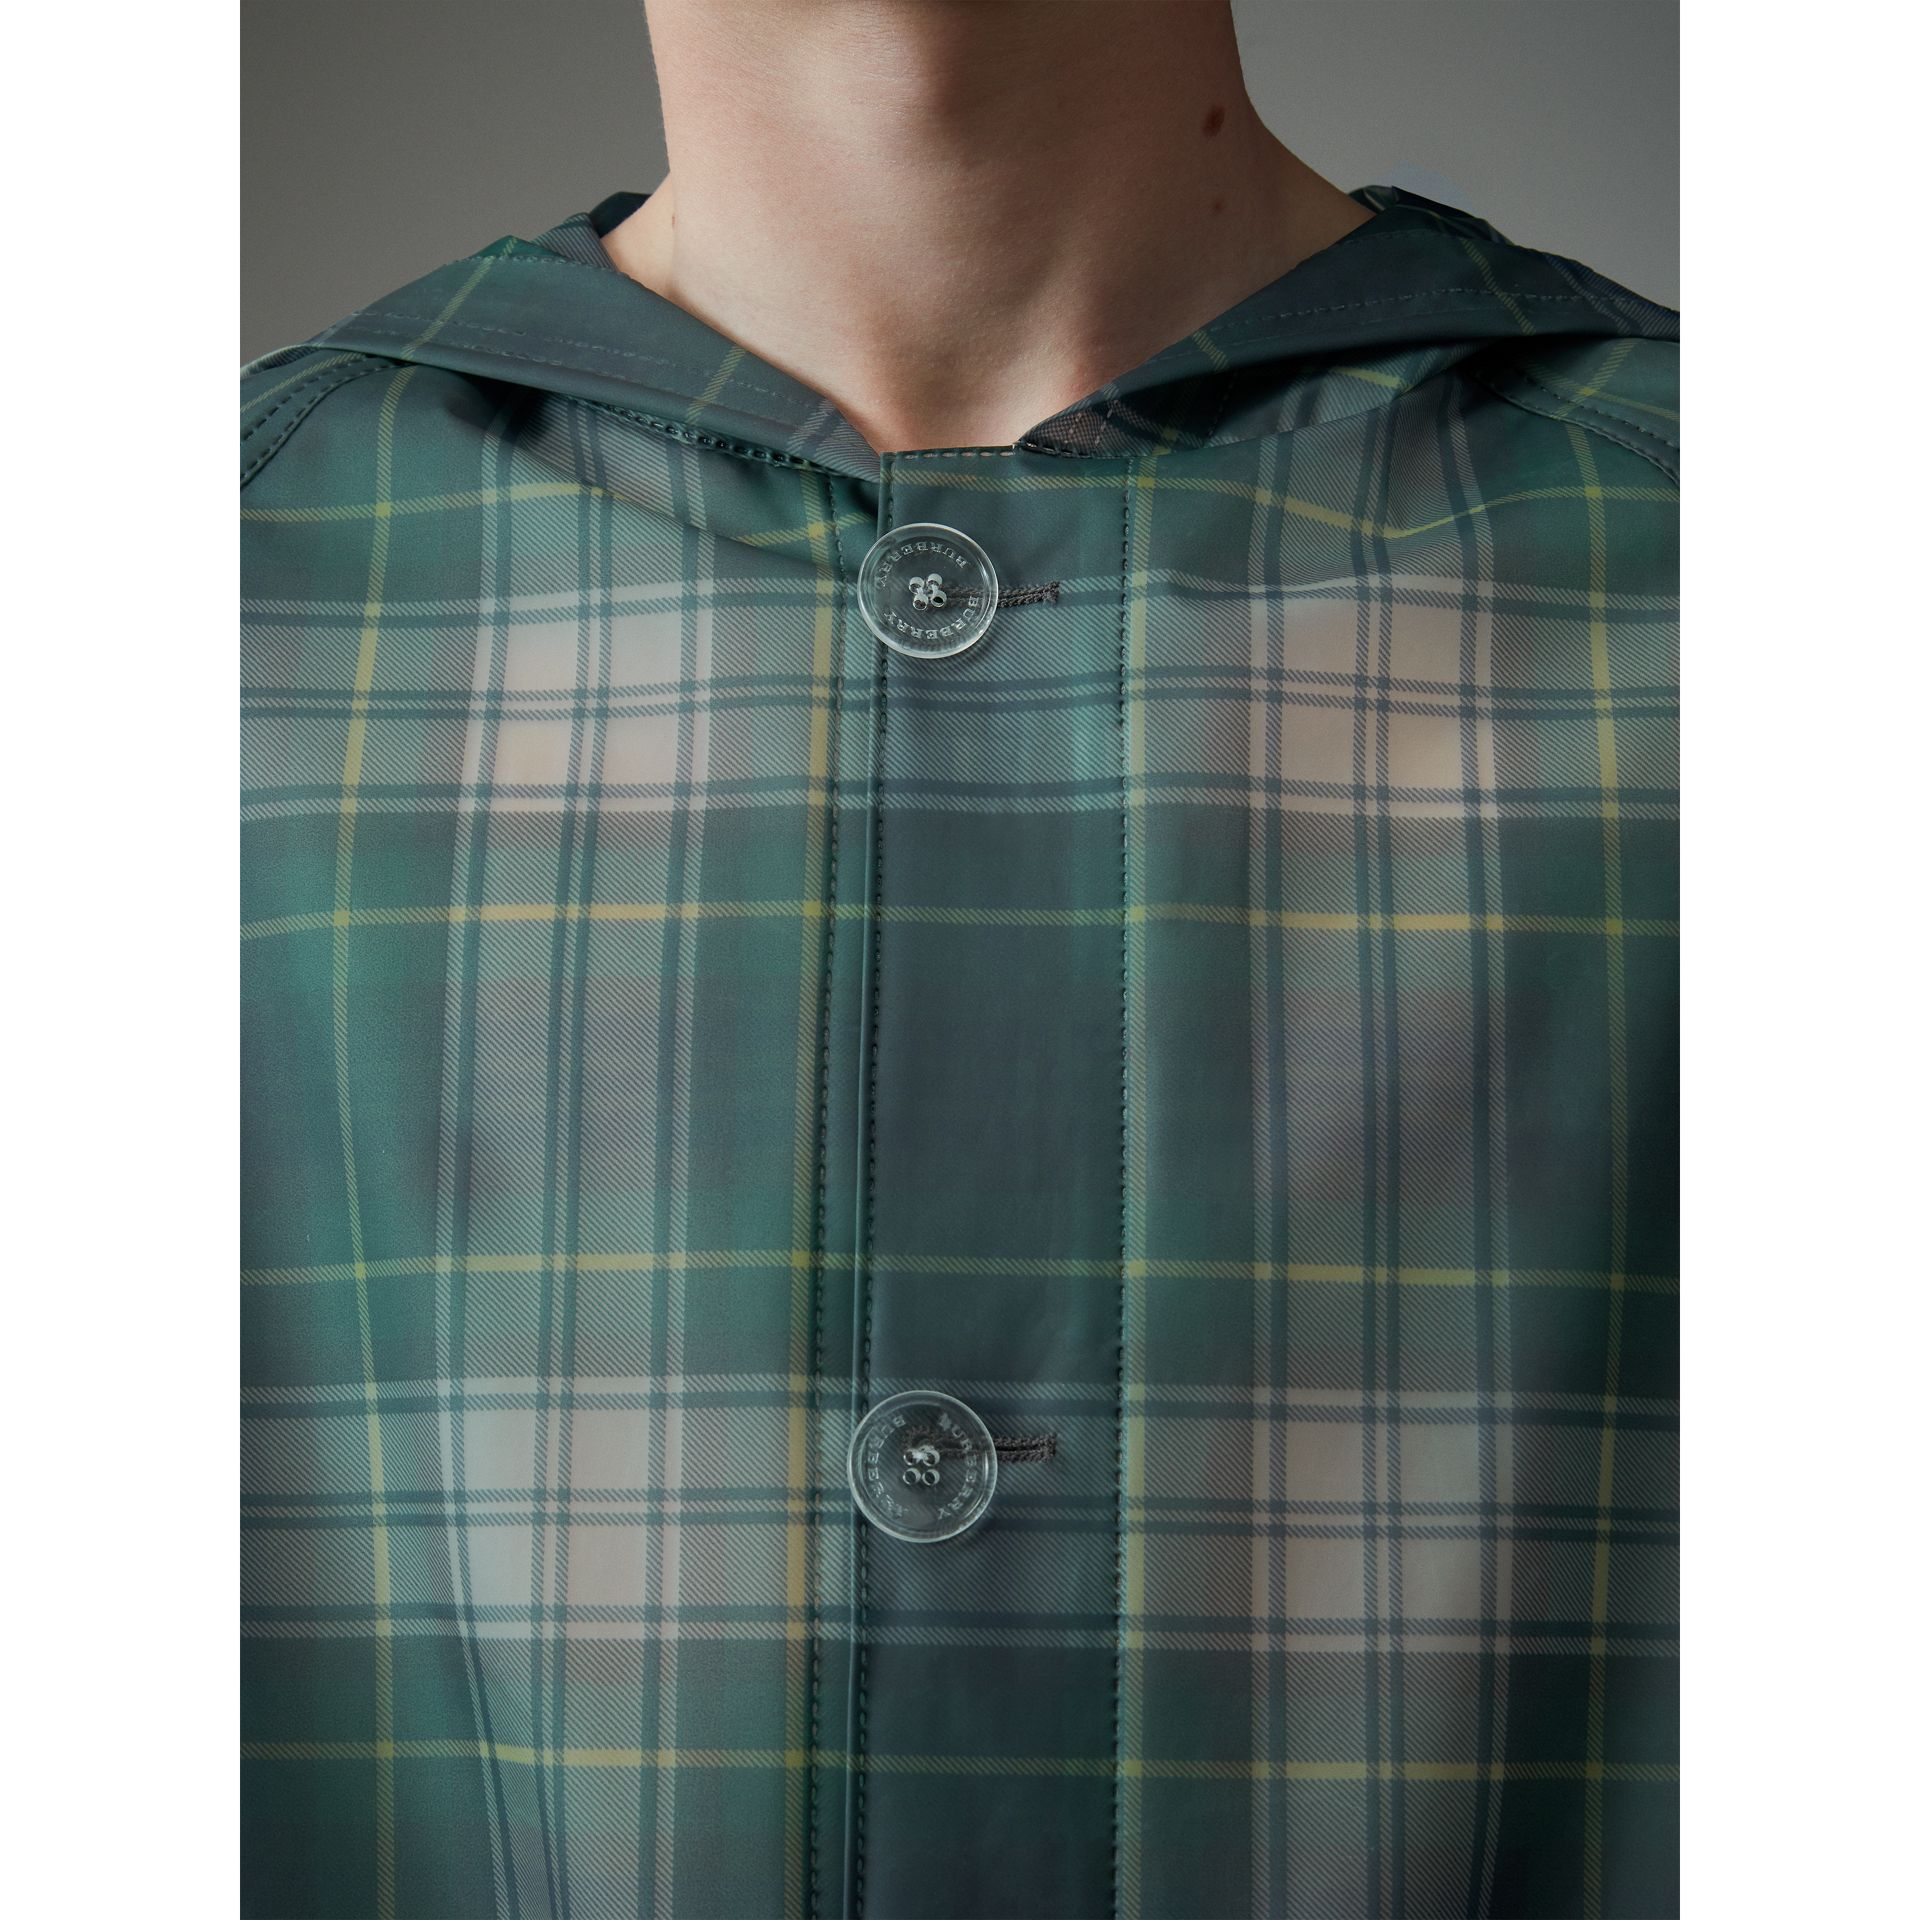 Tartan Soft-touch Plastic Hooded Car Coat in Navy - Men | Burberry United Kingdom - gallery image 4